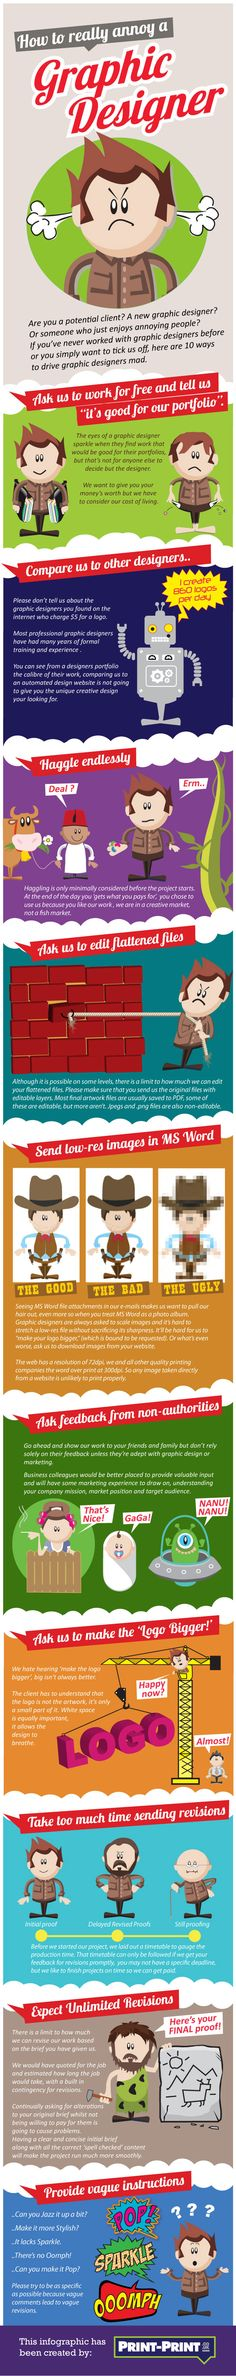 How to Annoy a Graphic Designer - An Infographic from Print-Print.co.uk Blog